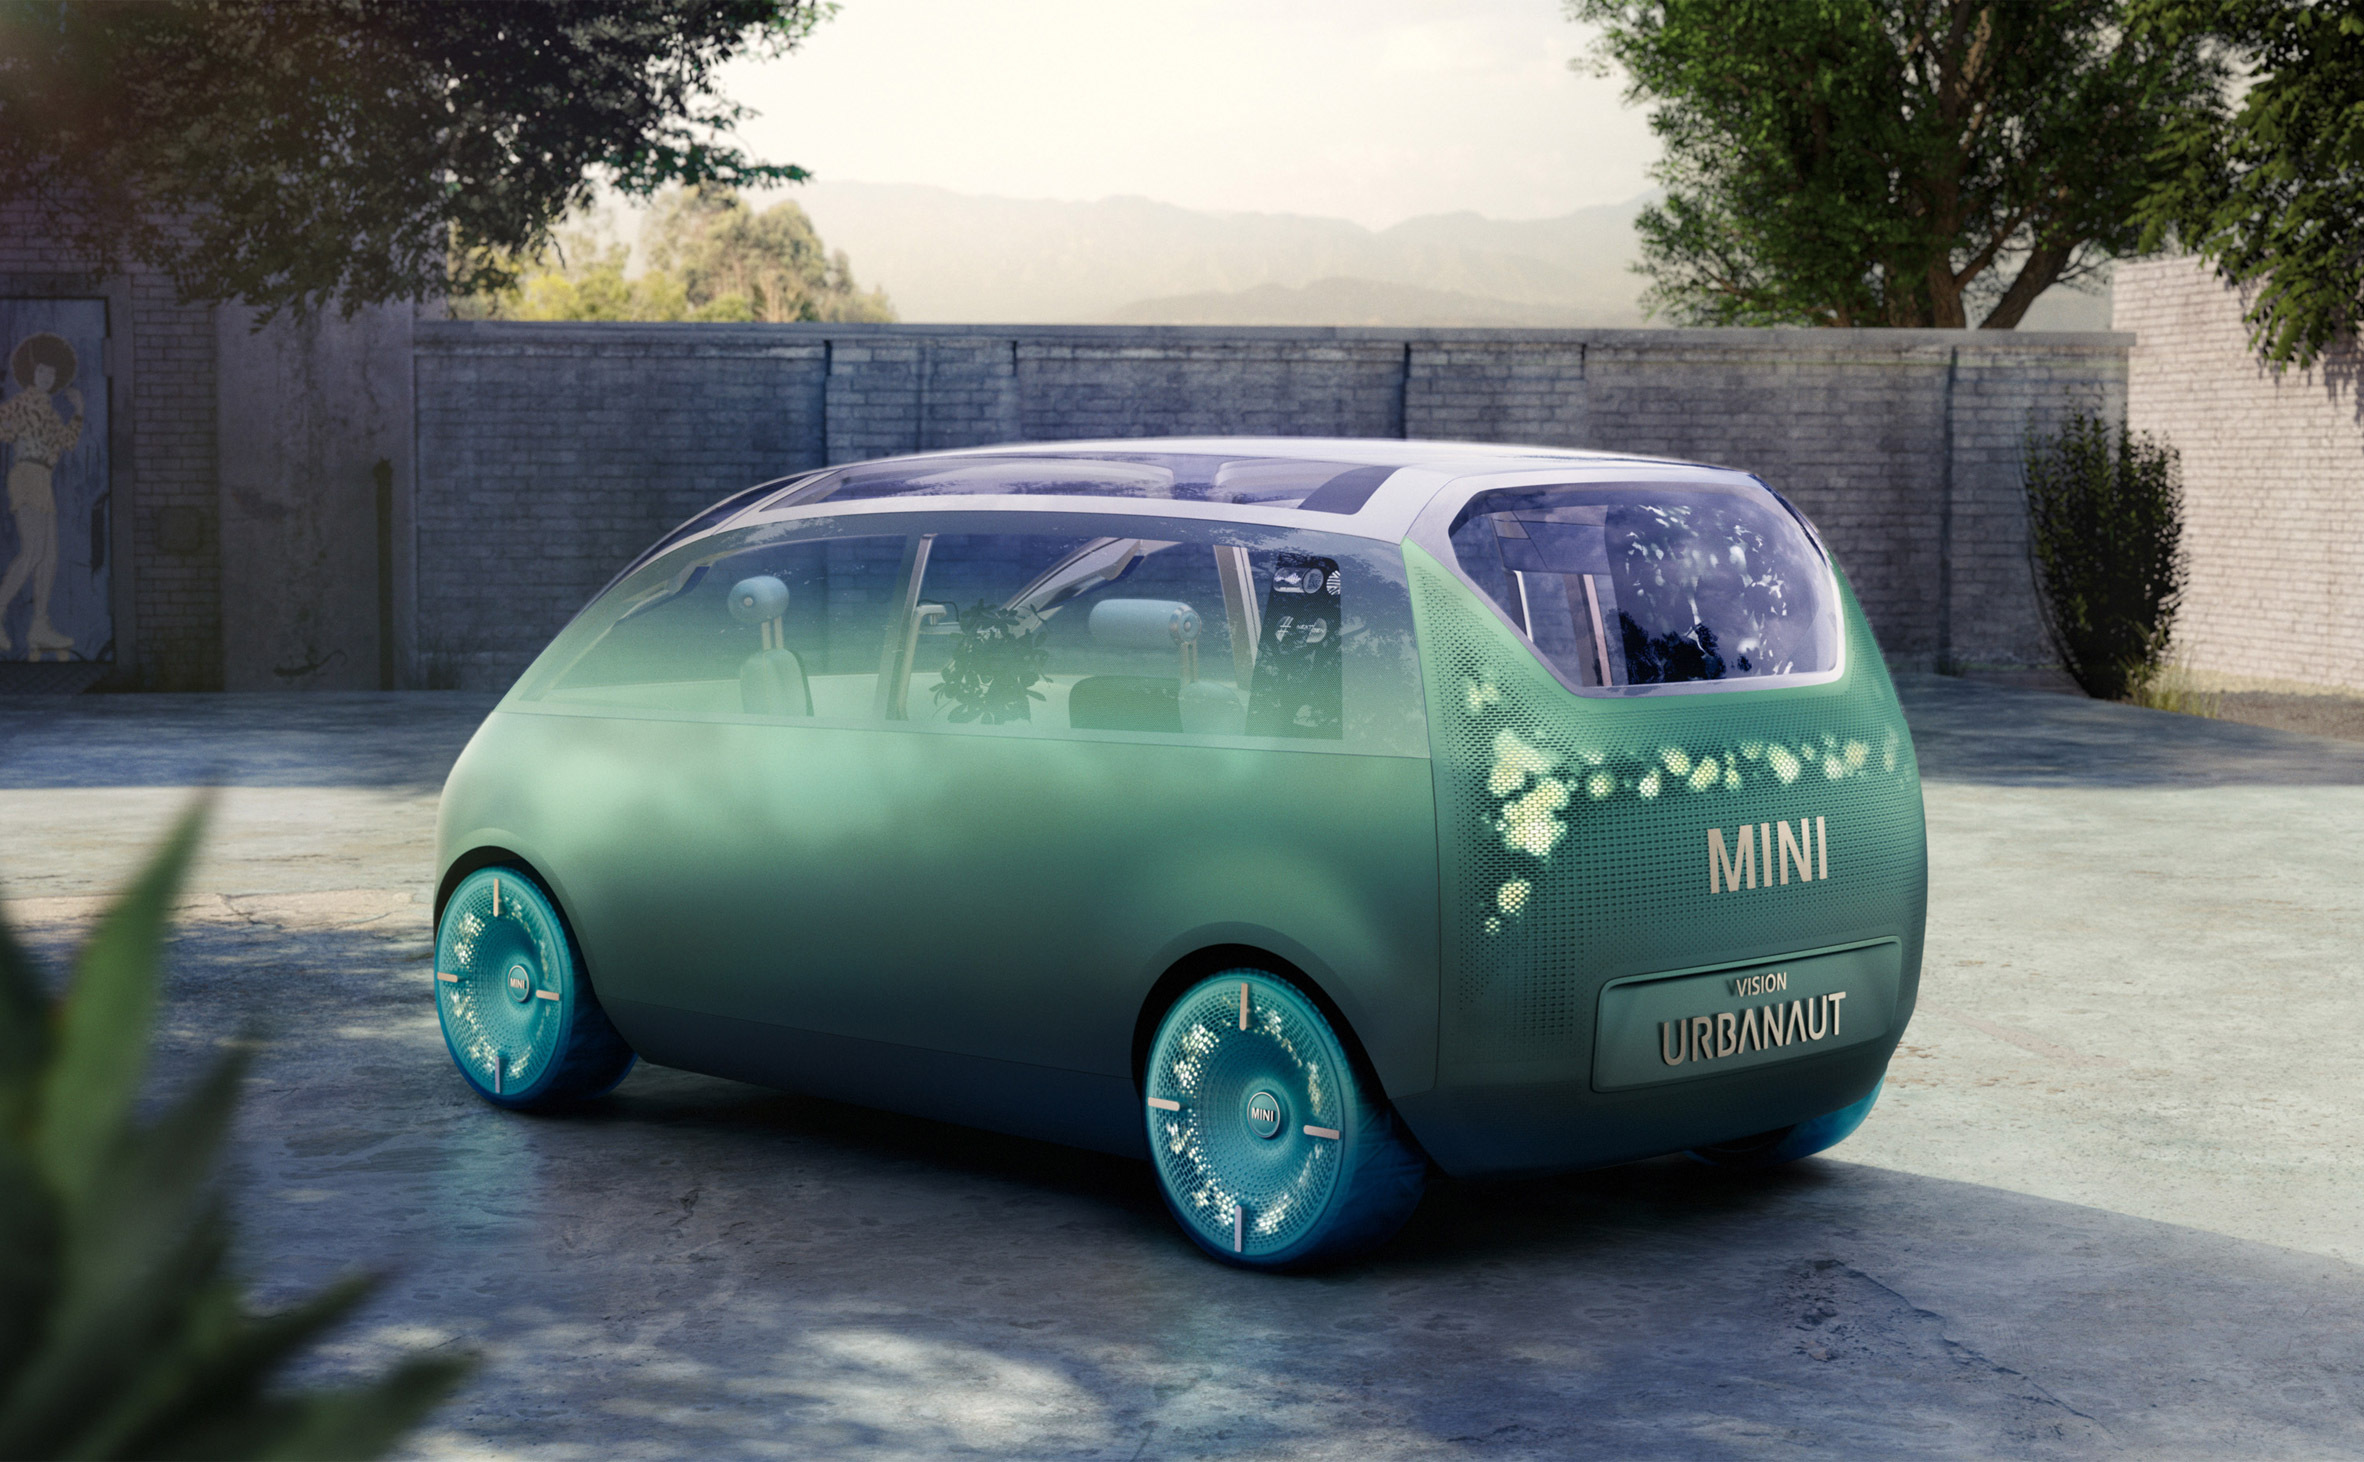 Exterior view of the MINI Vision Urbanaut concept vehicle